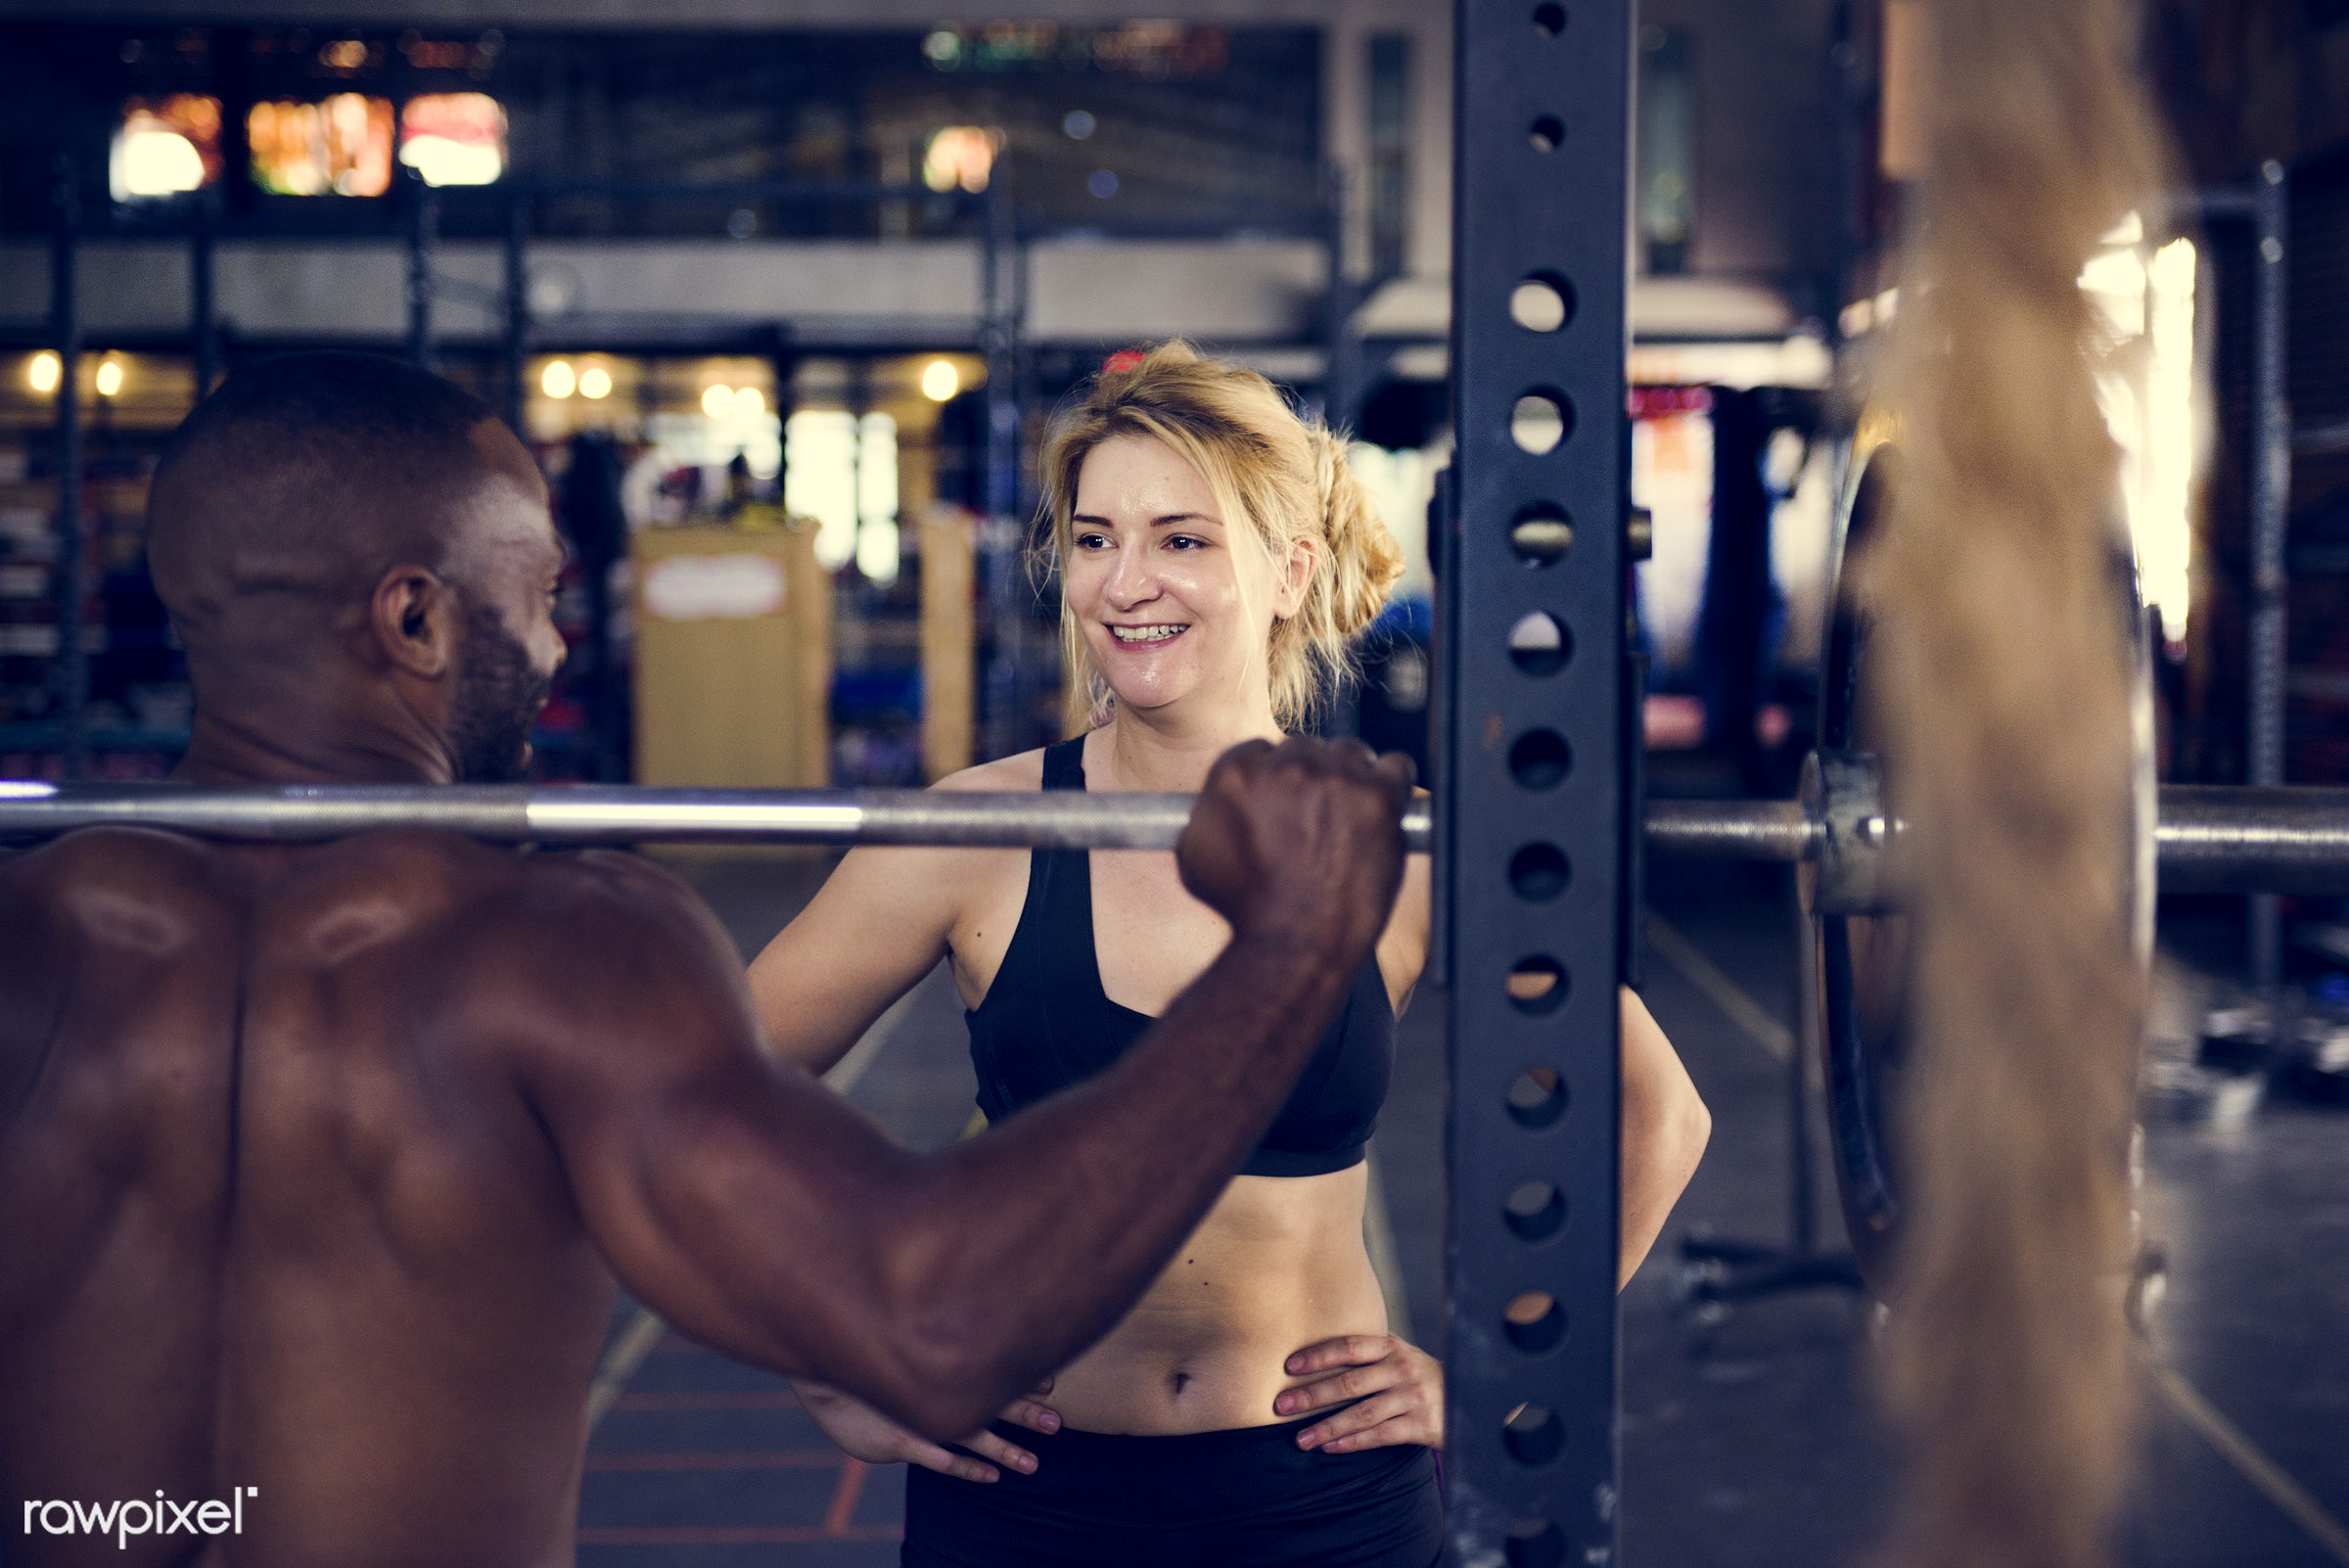 At the gym - active, activity, athlete, athletic, barbell, body, buff, caucasian, diverse, diversity, equipment, female, fit...